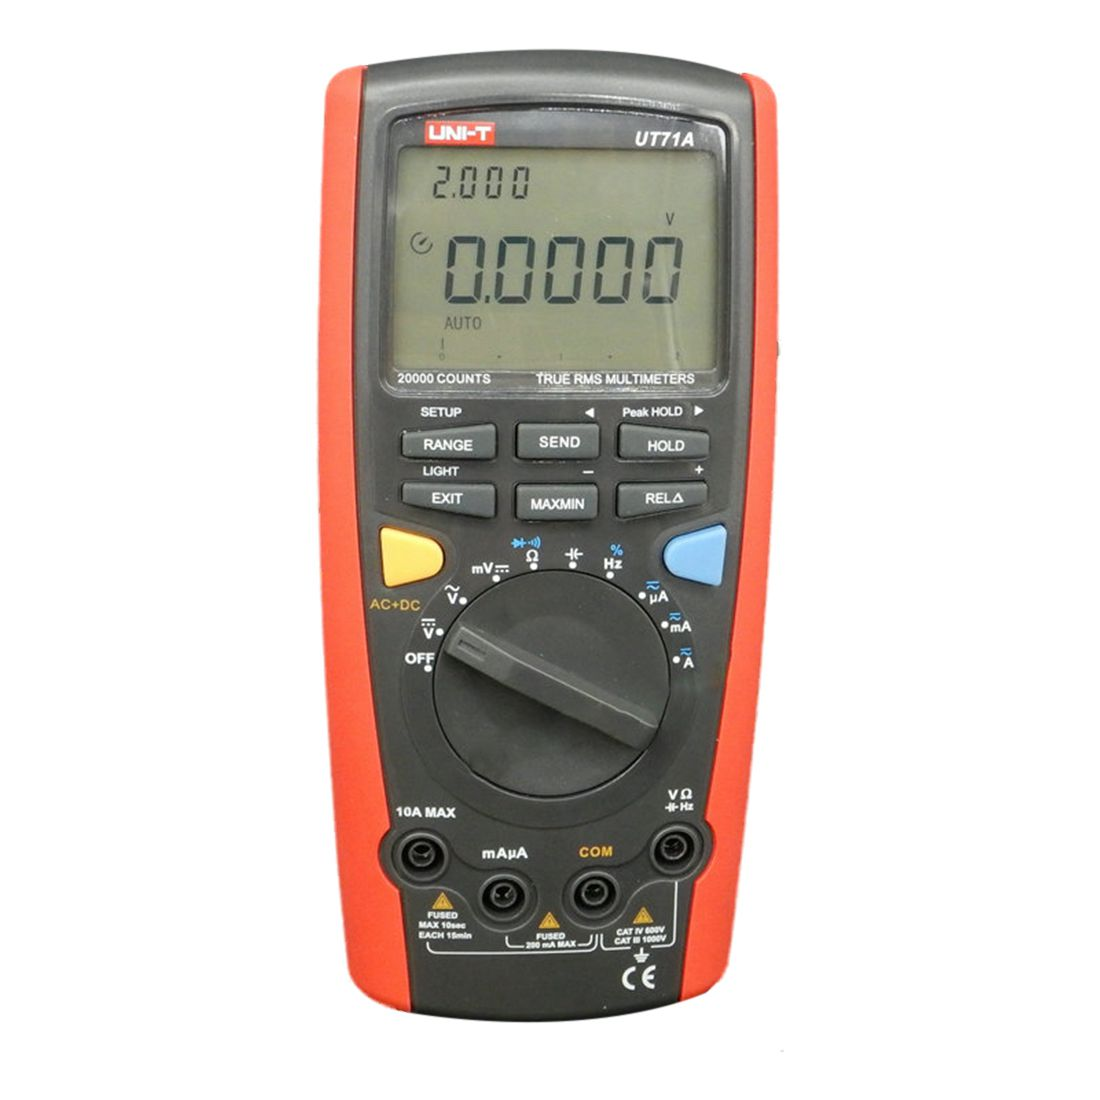 UNI-T1 set UT71A Intelligent Digital Multimeters CD Digital AC DC current voltage USB true Resistance Tester Ammeter Multitester uni t ut71b professional intelligent lcd digital ac dc current voltage meter usb true rel resistance tester ammeter multitester